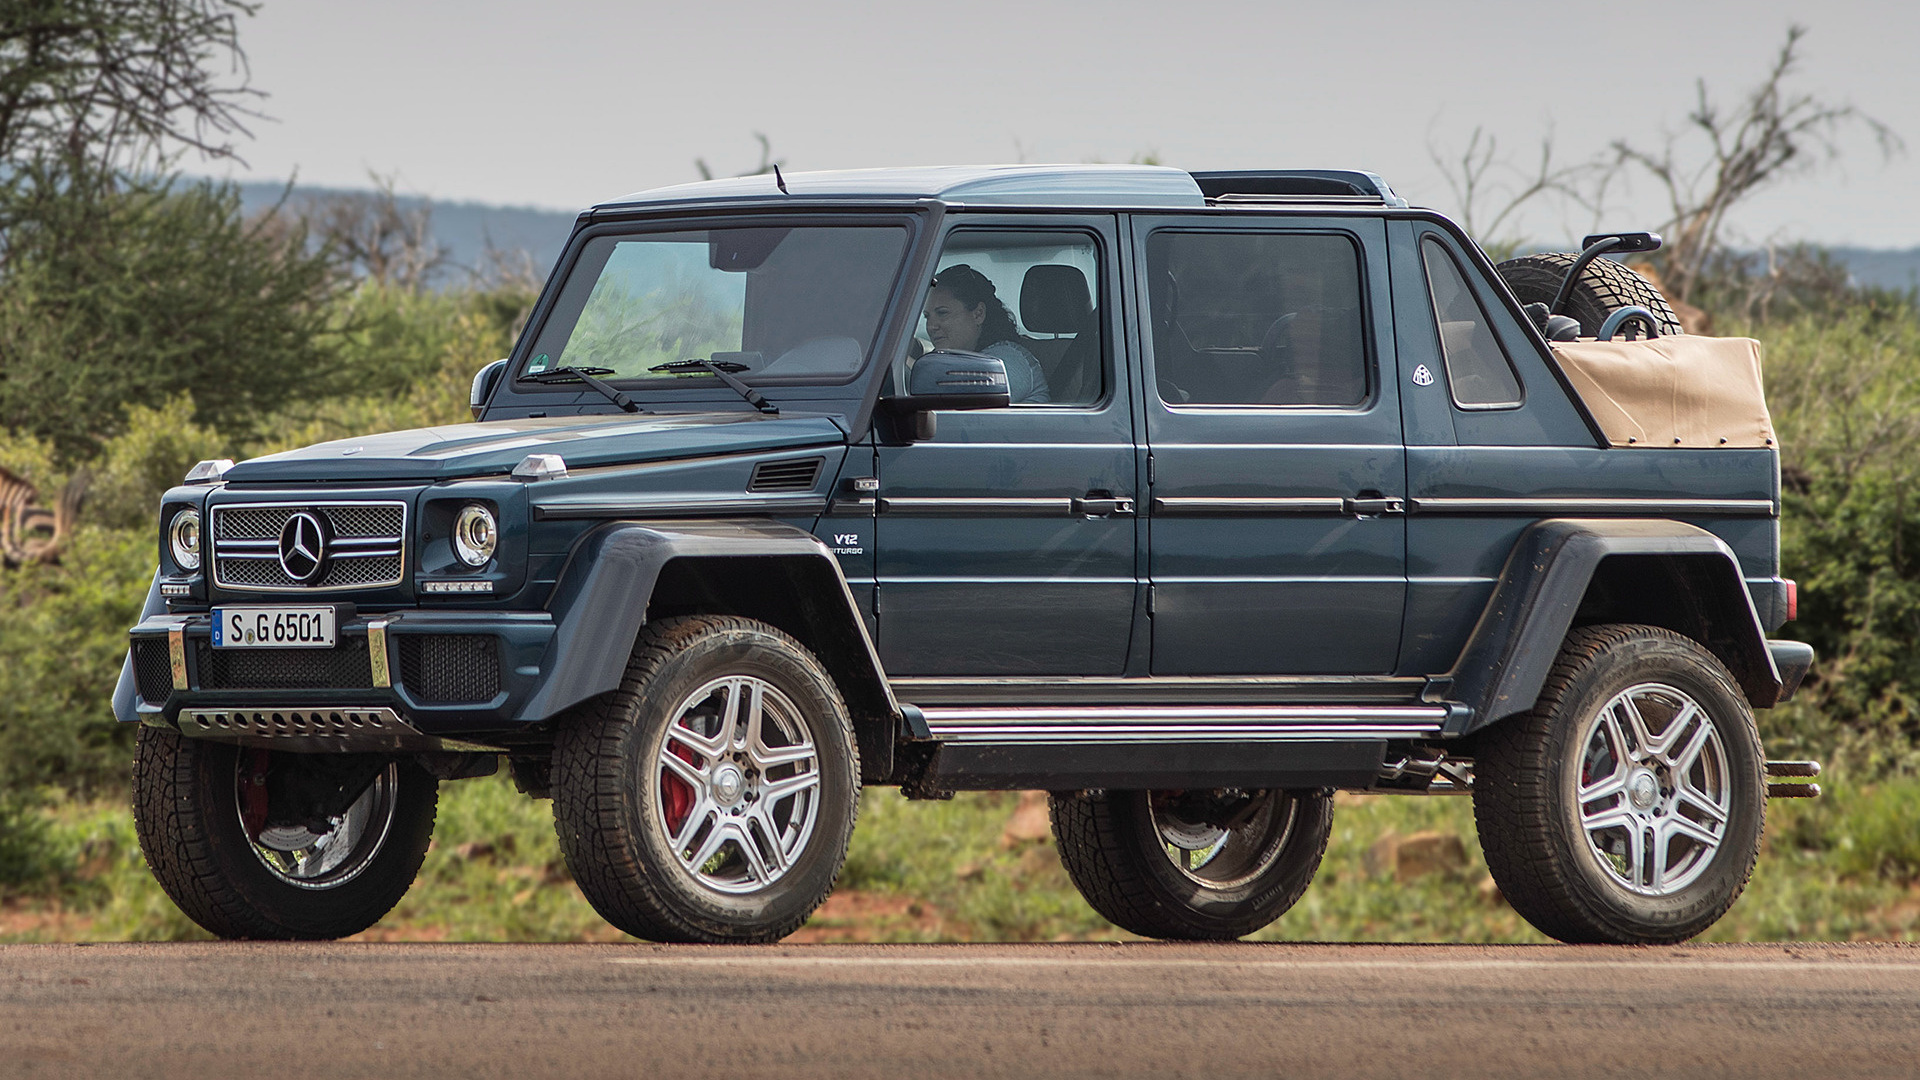 2017 Mercedes Maybach G Class Landaulet Wallpapers And